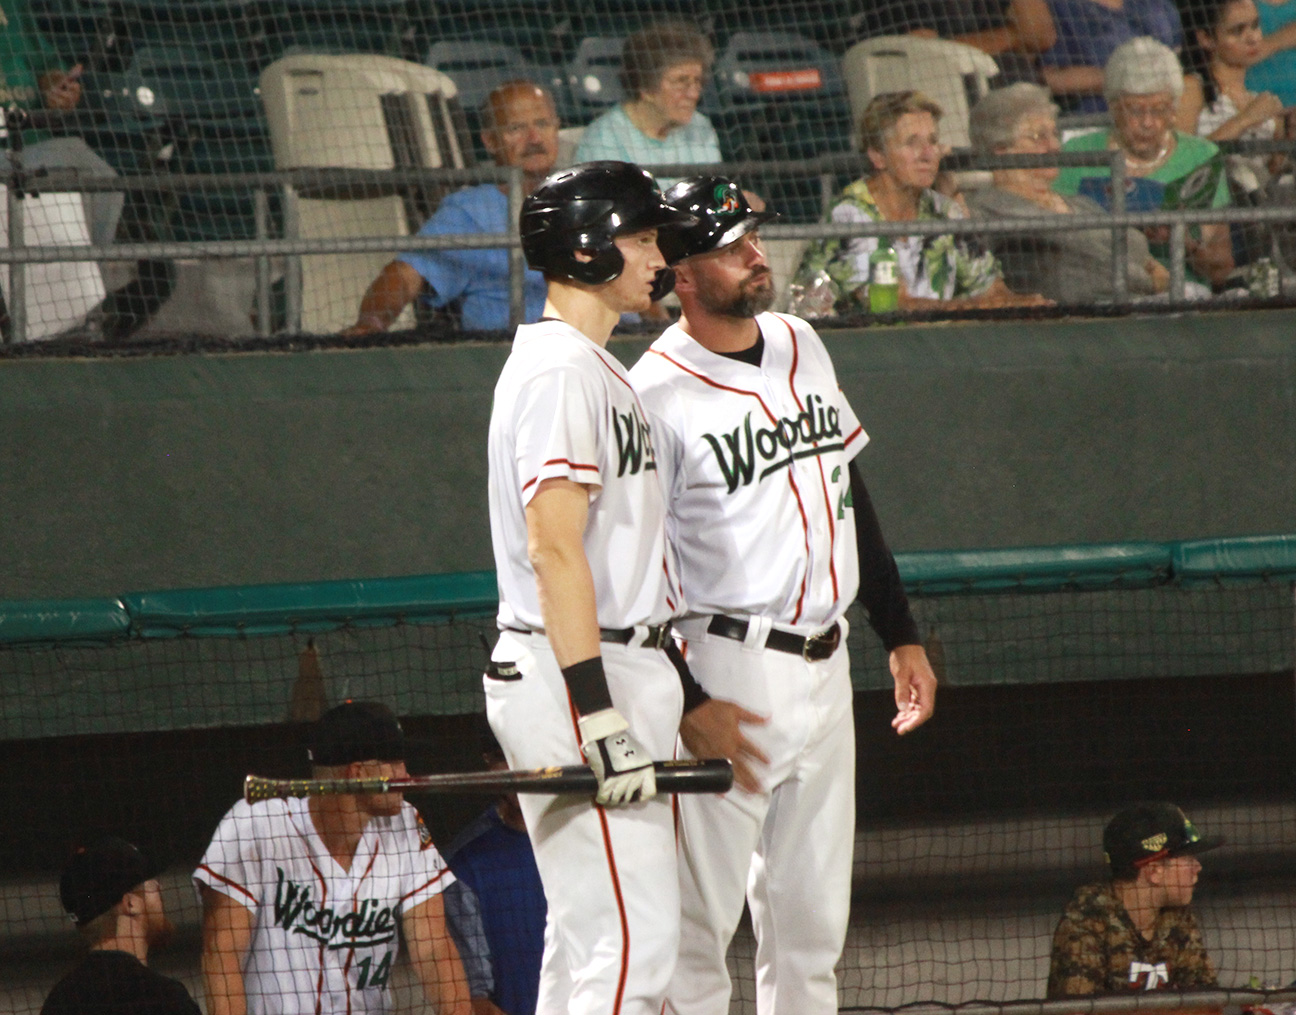 Down East Wood Ducks manager Corey Ragsdale, right, chats with catcher Sam Huff during a game at Historic Grainger Stadium on Tuesday. Photo by Linda Whittington / Neuse News